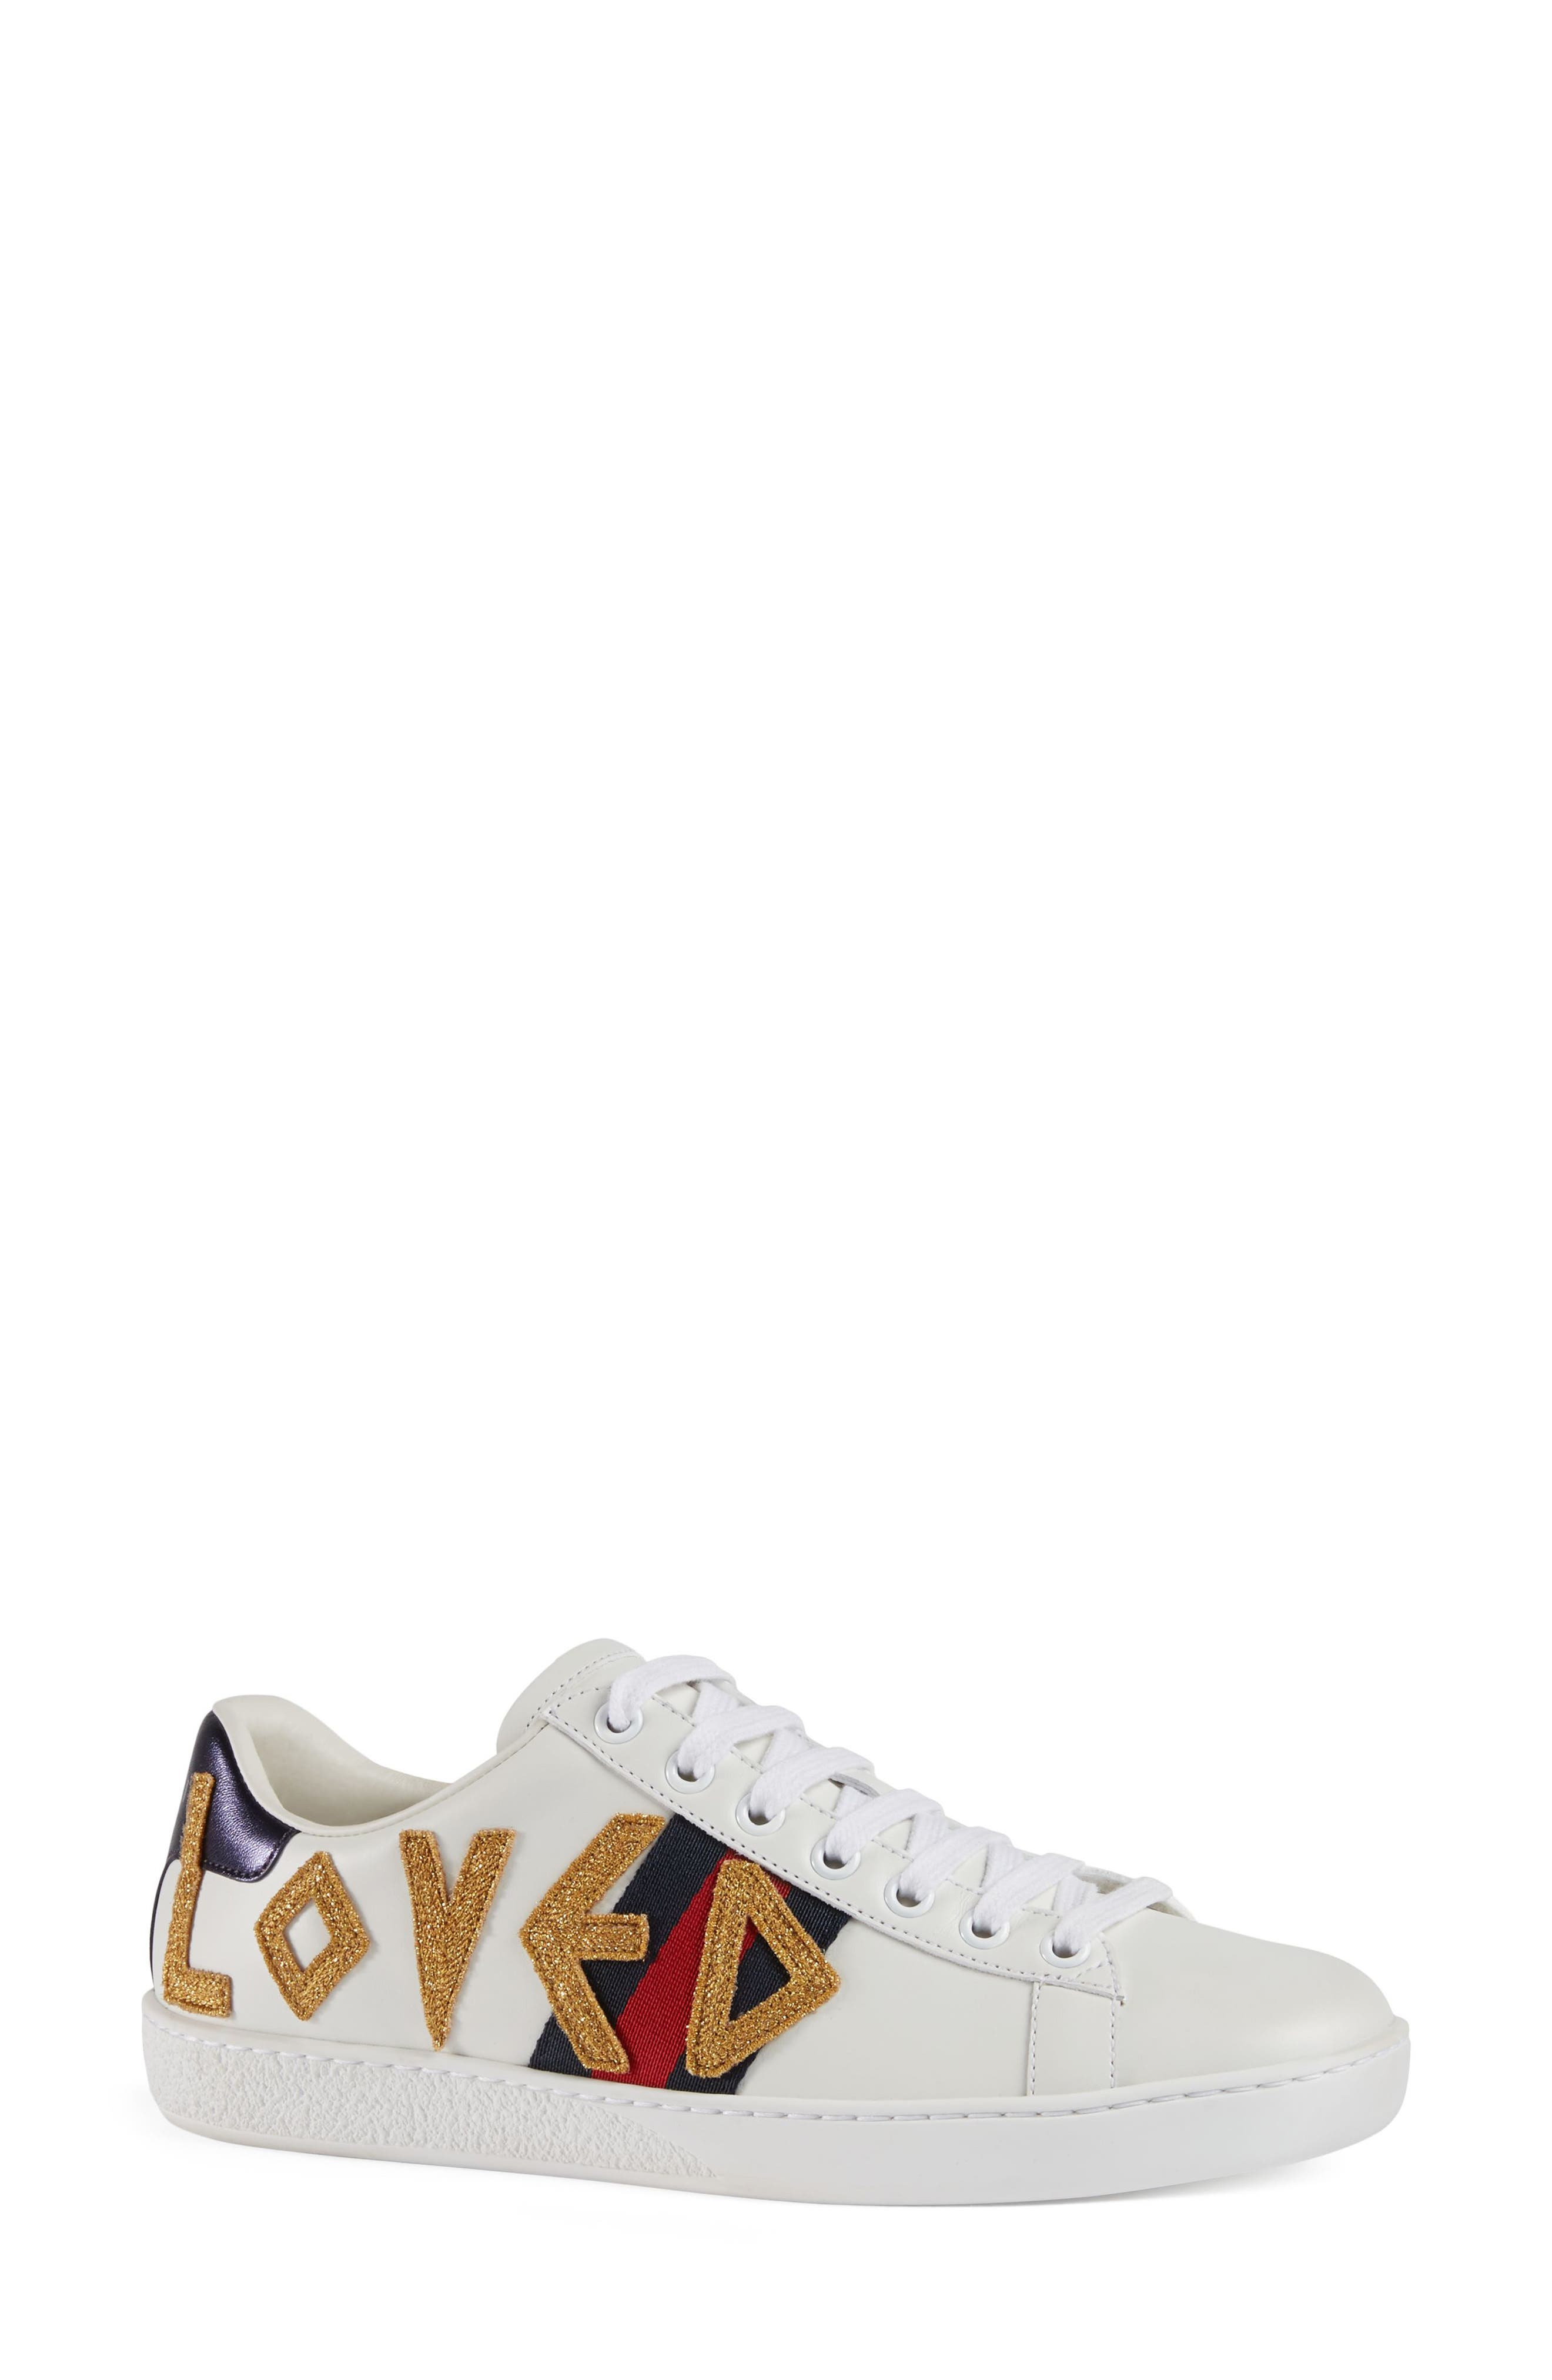 GUCCI New Ace Loved Sneakers, Main, color, WHITE